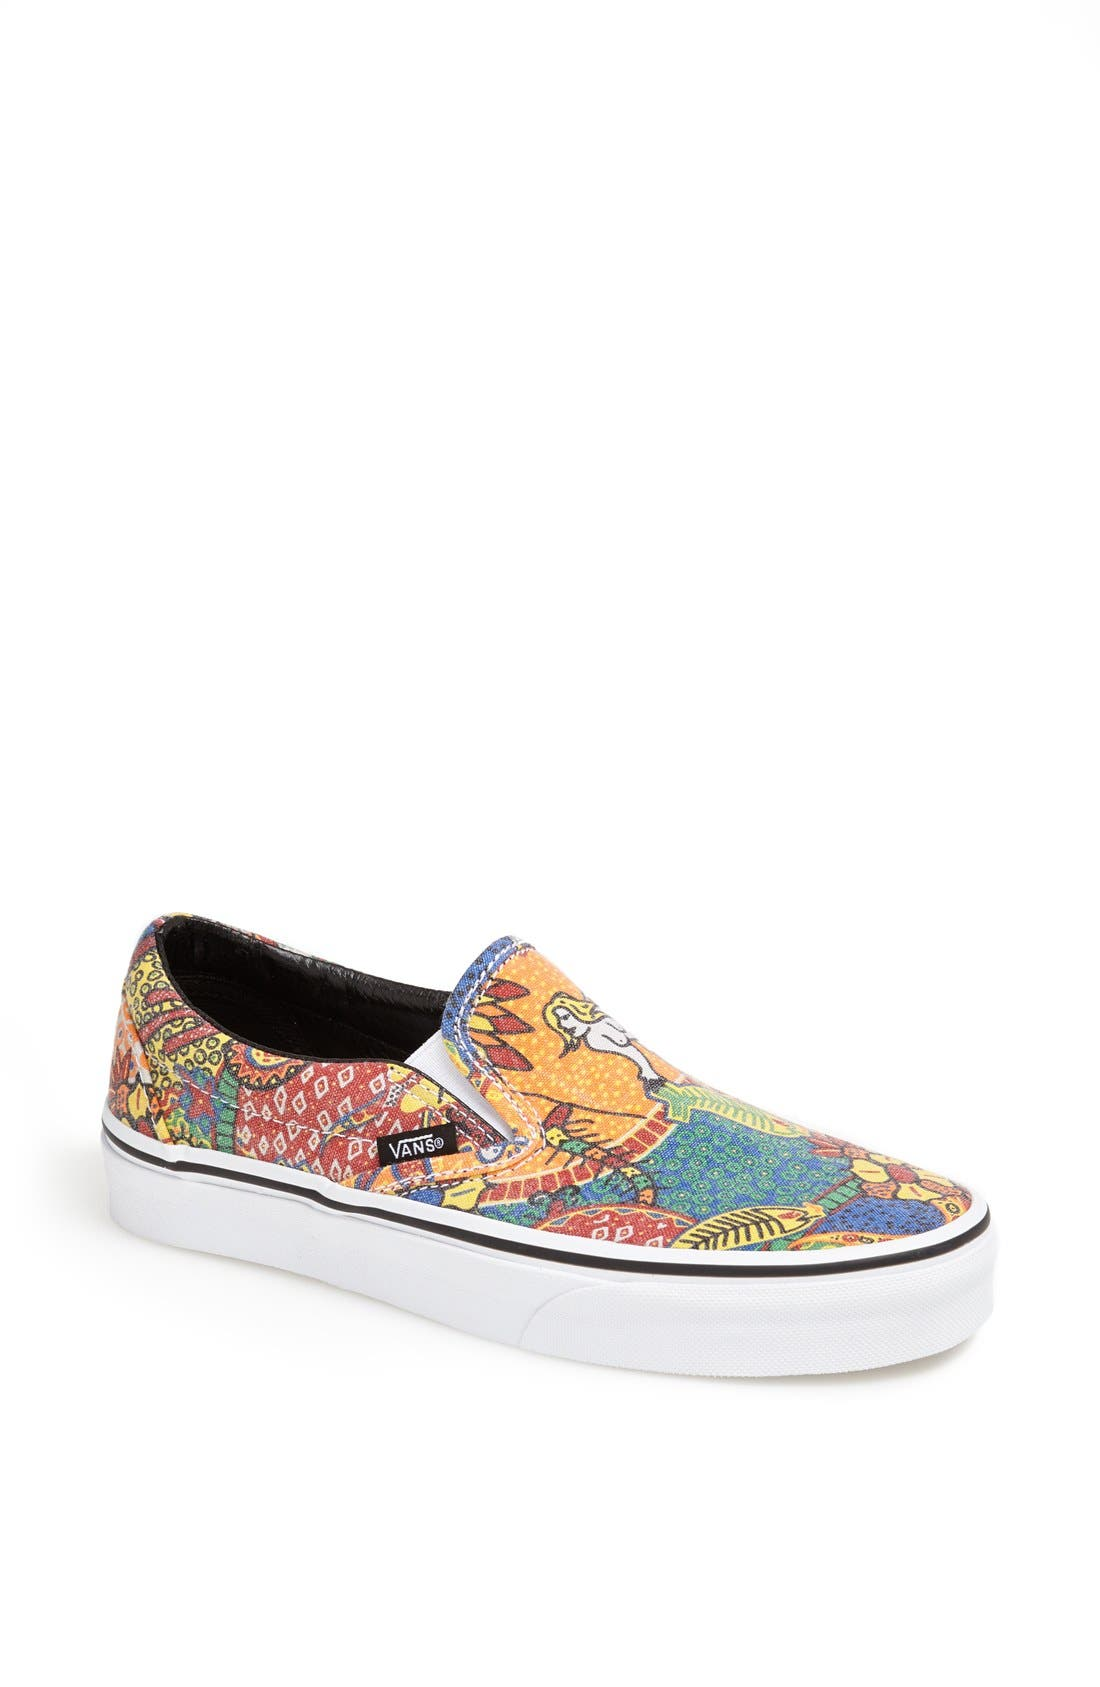 Alternate Image 1 Selected - Vans 'Van Doren - Classic' Slip-On Sneaker (Women)